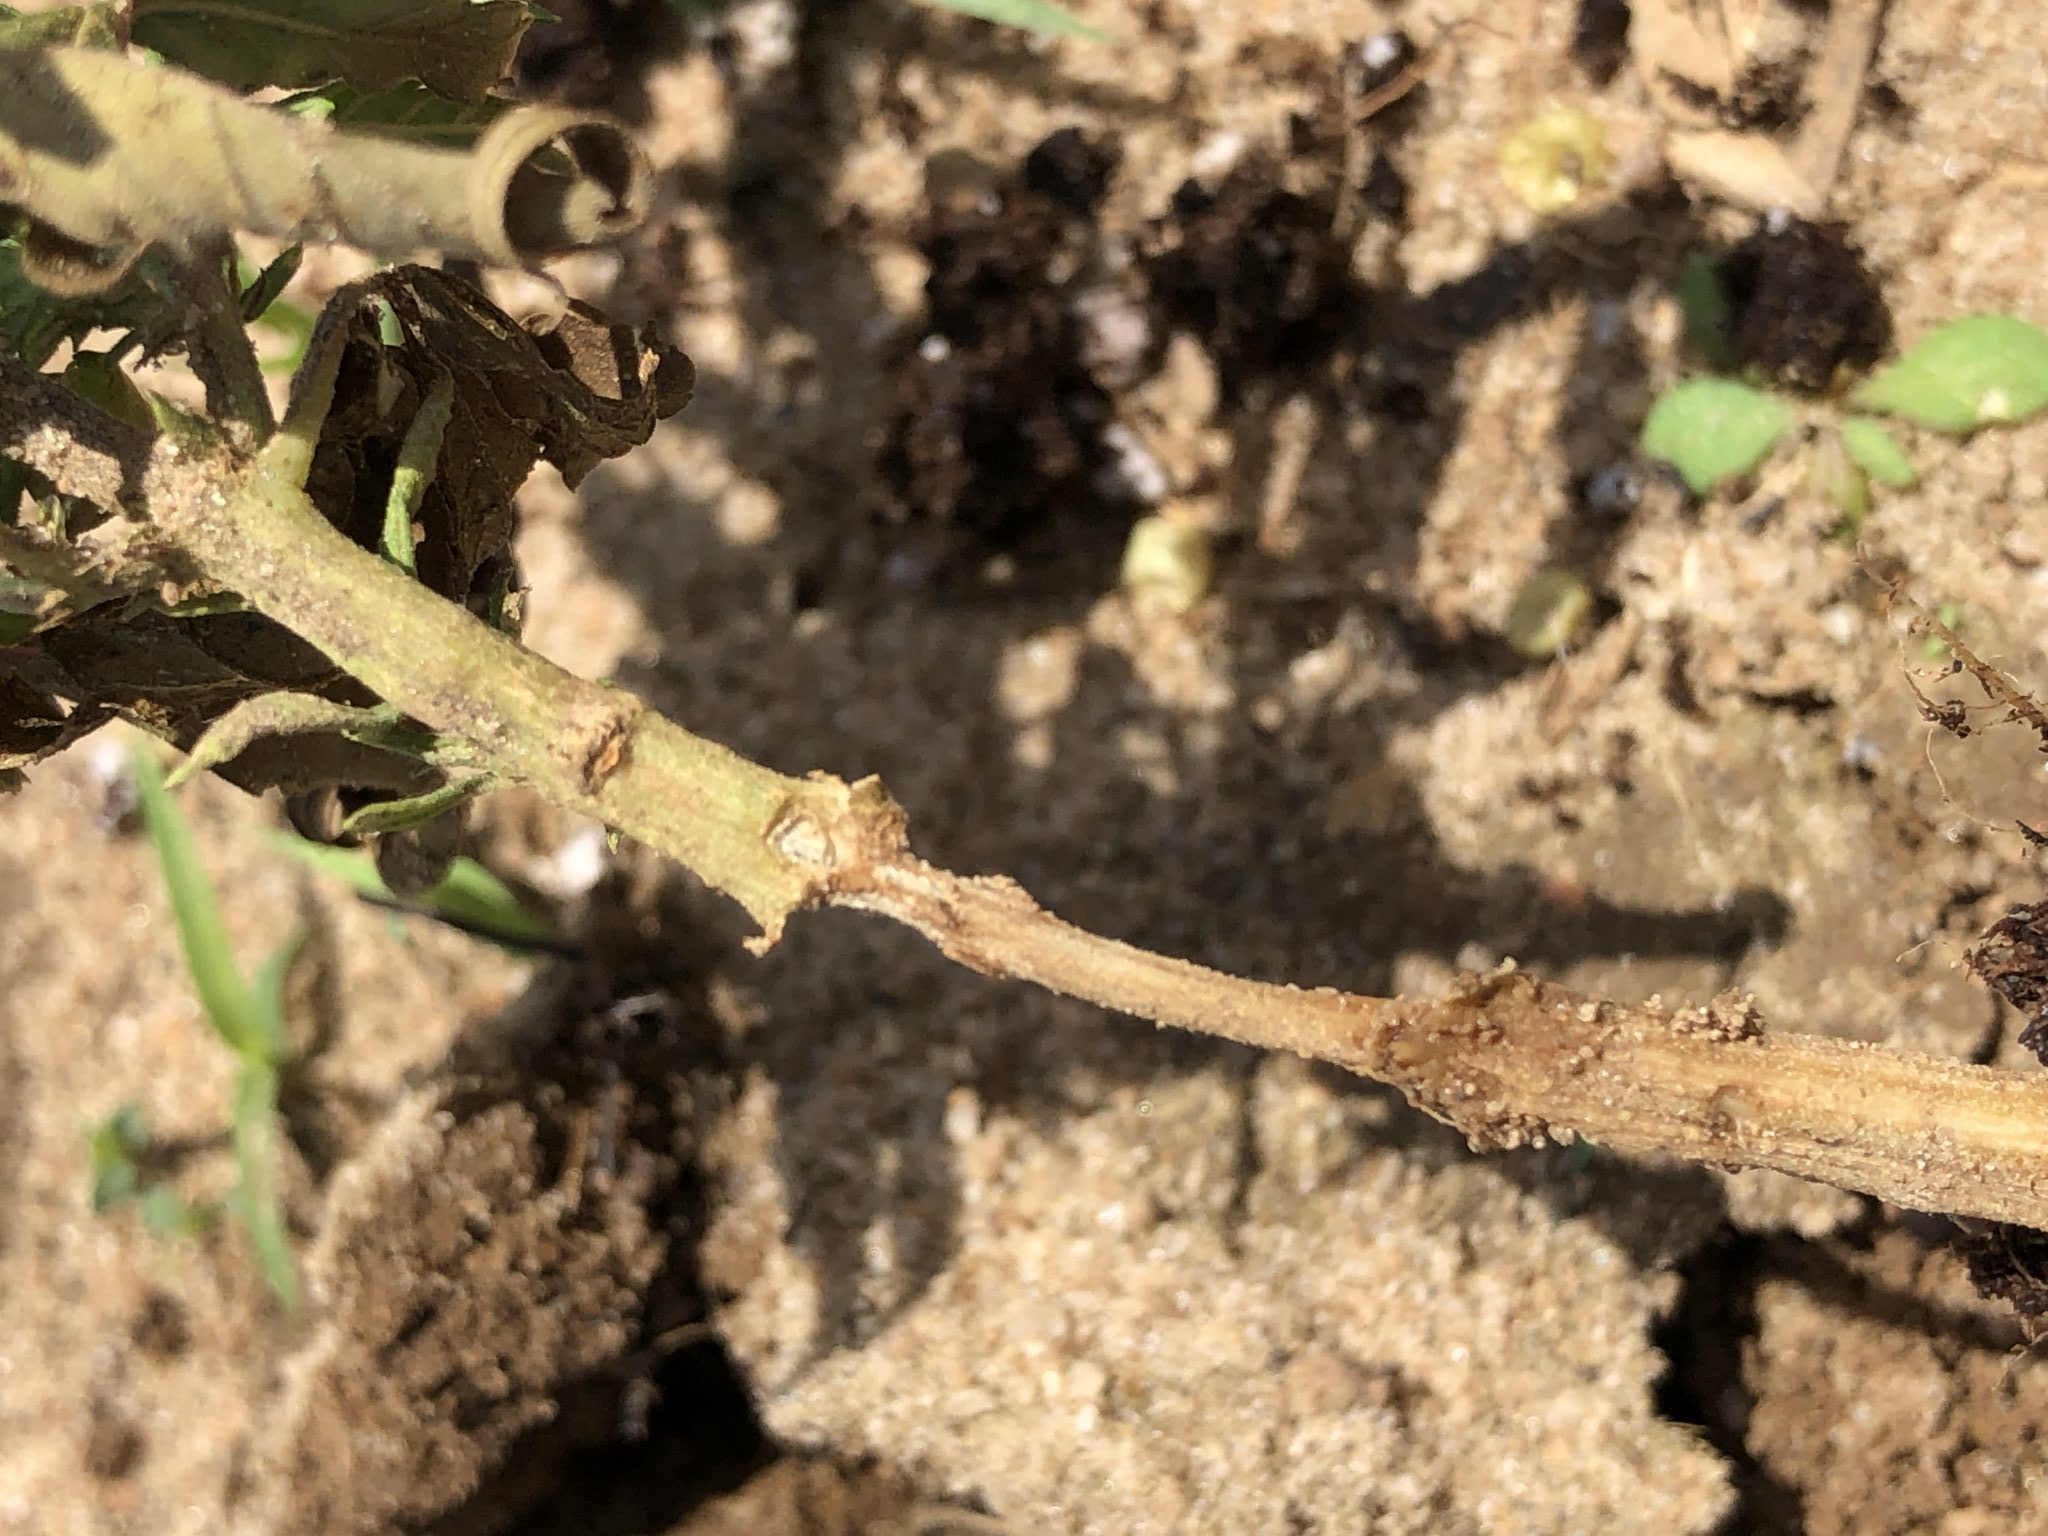 Fire ant damage on hemp stem